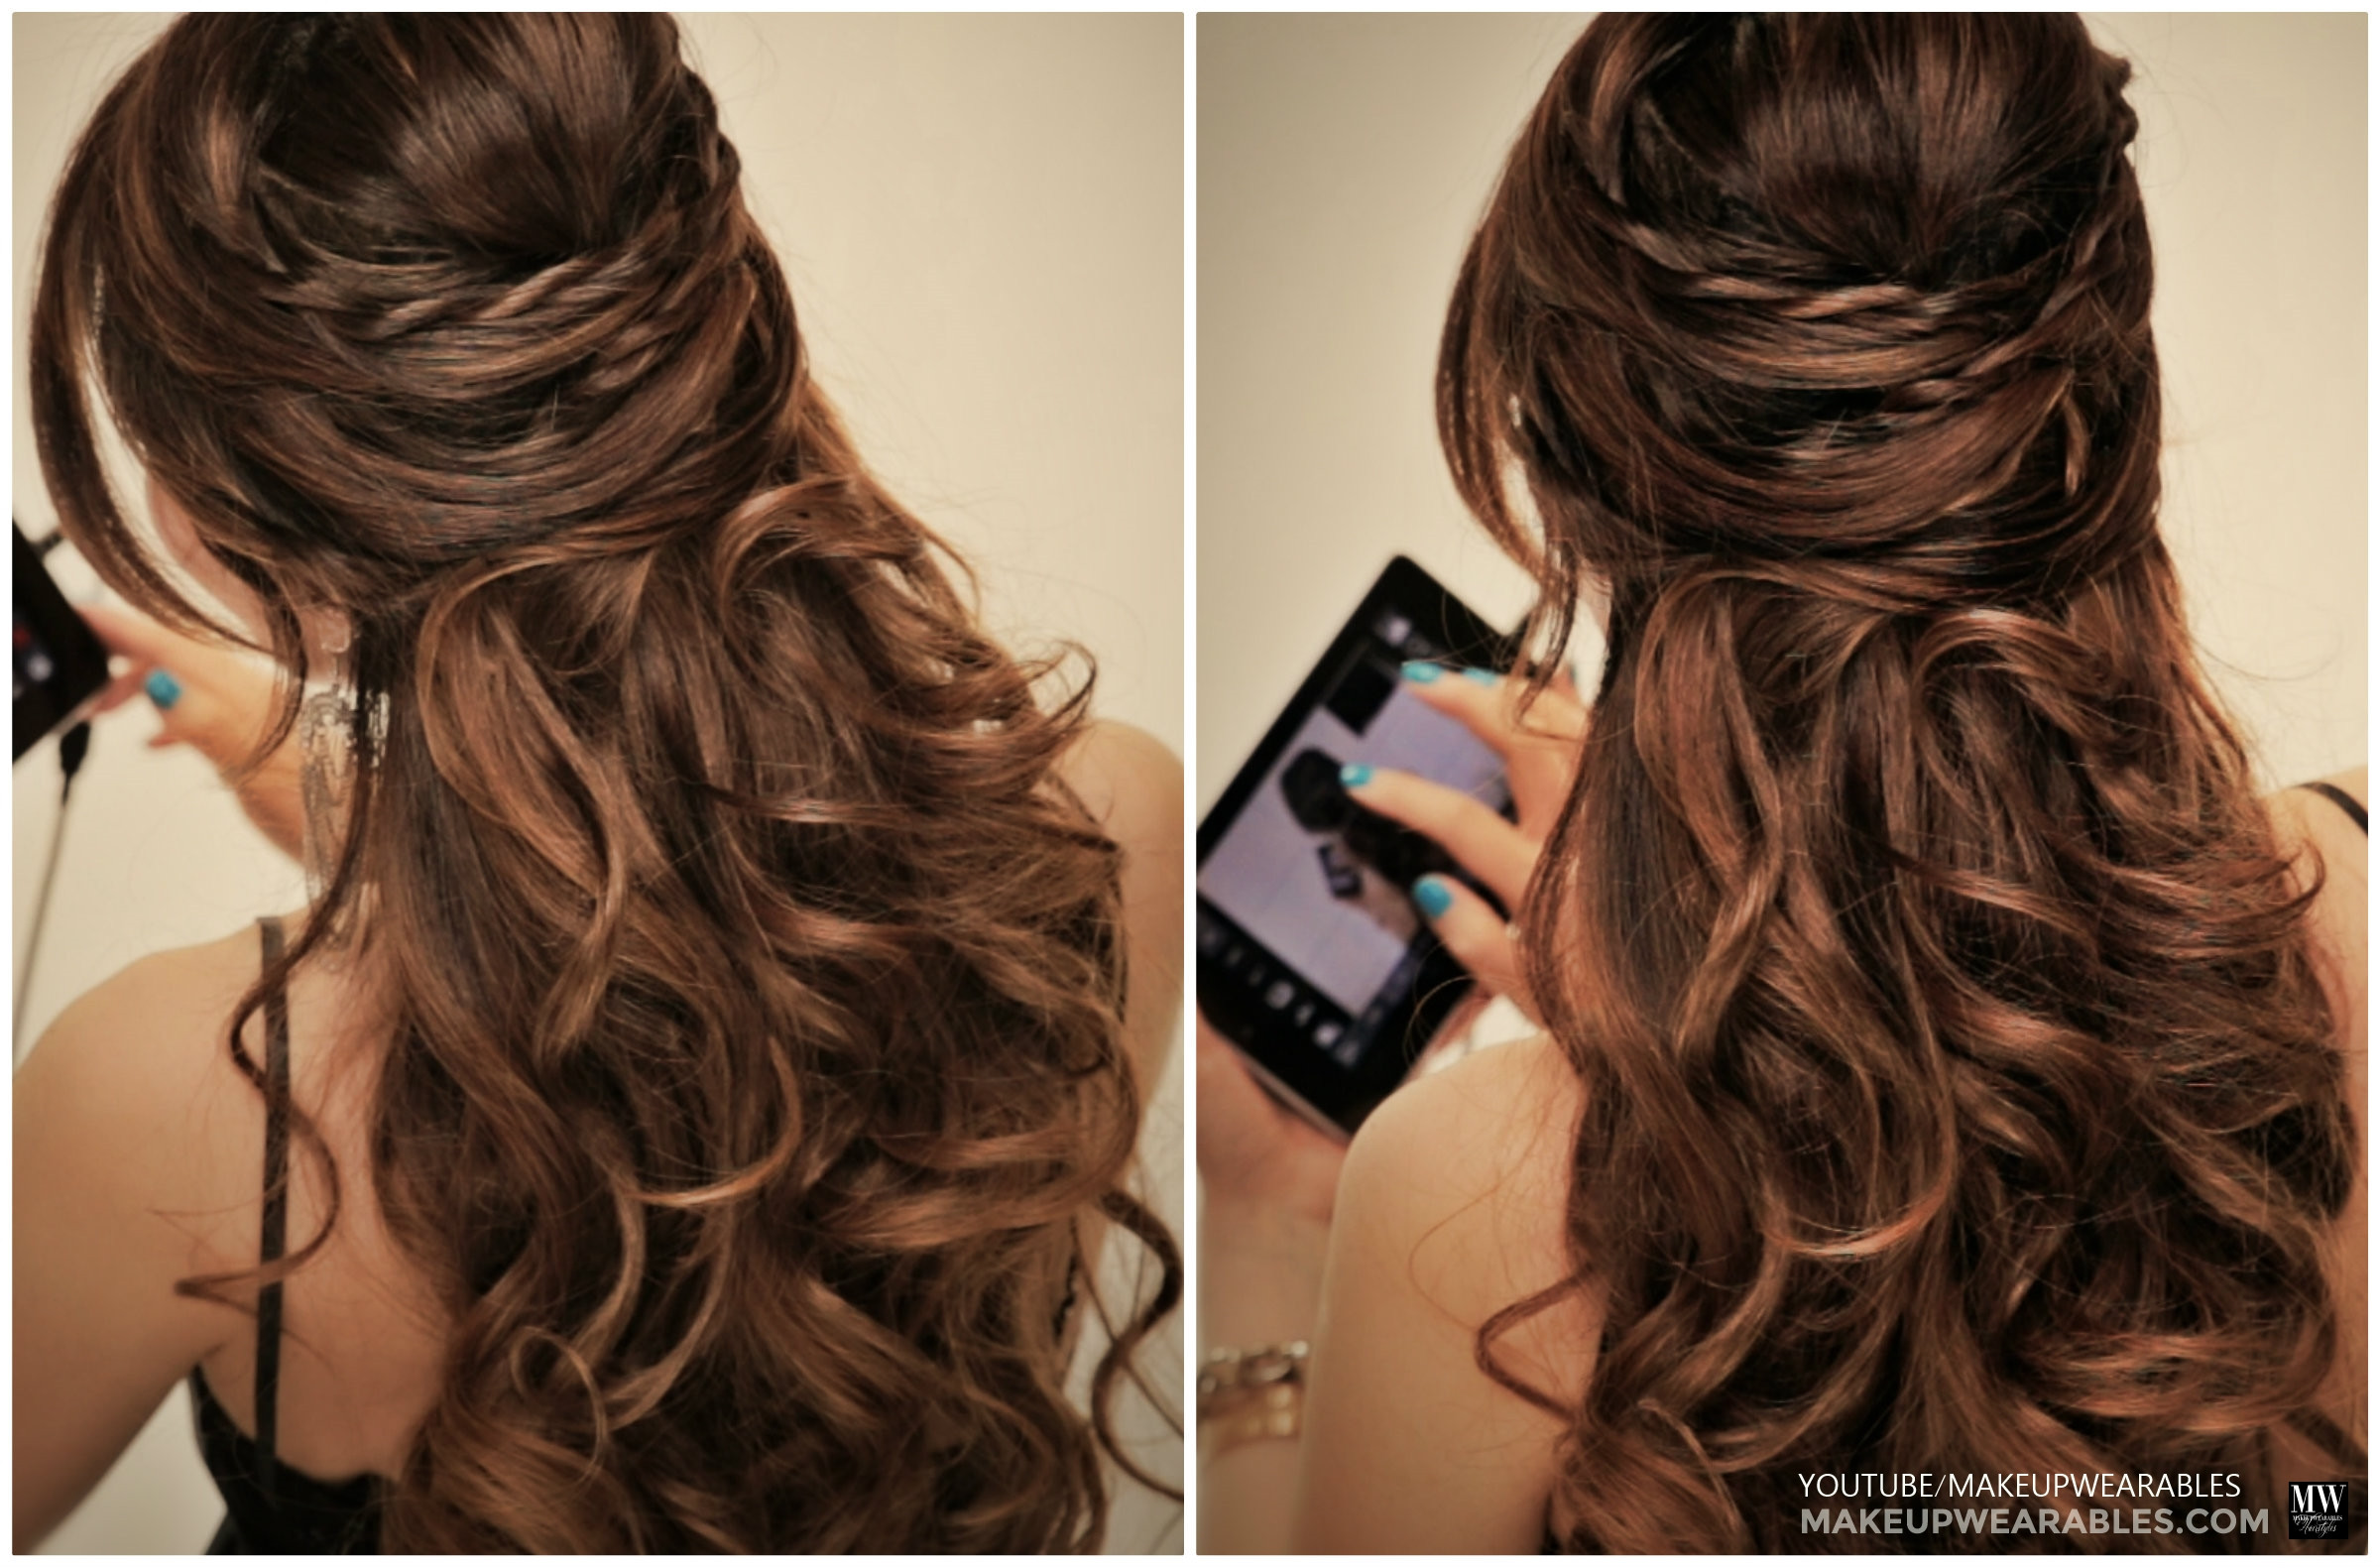 Best ideas about Easy Up Hairstyles . Save or Pin Romantic crisscross half up half down updo with twists Now.